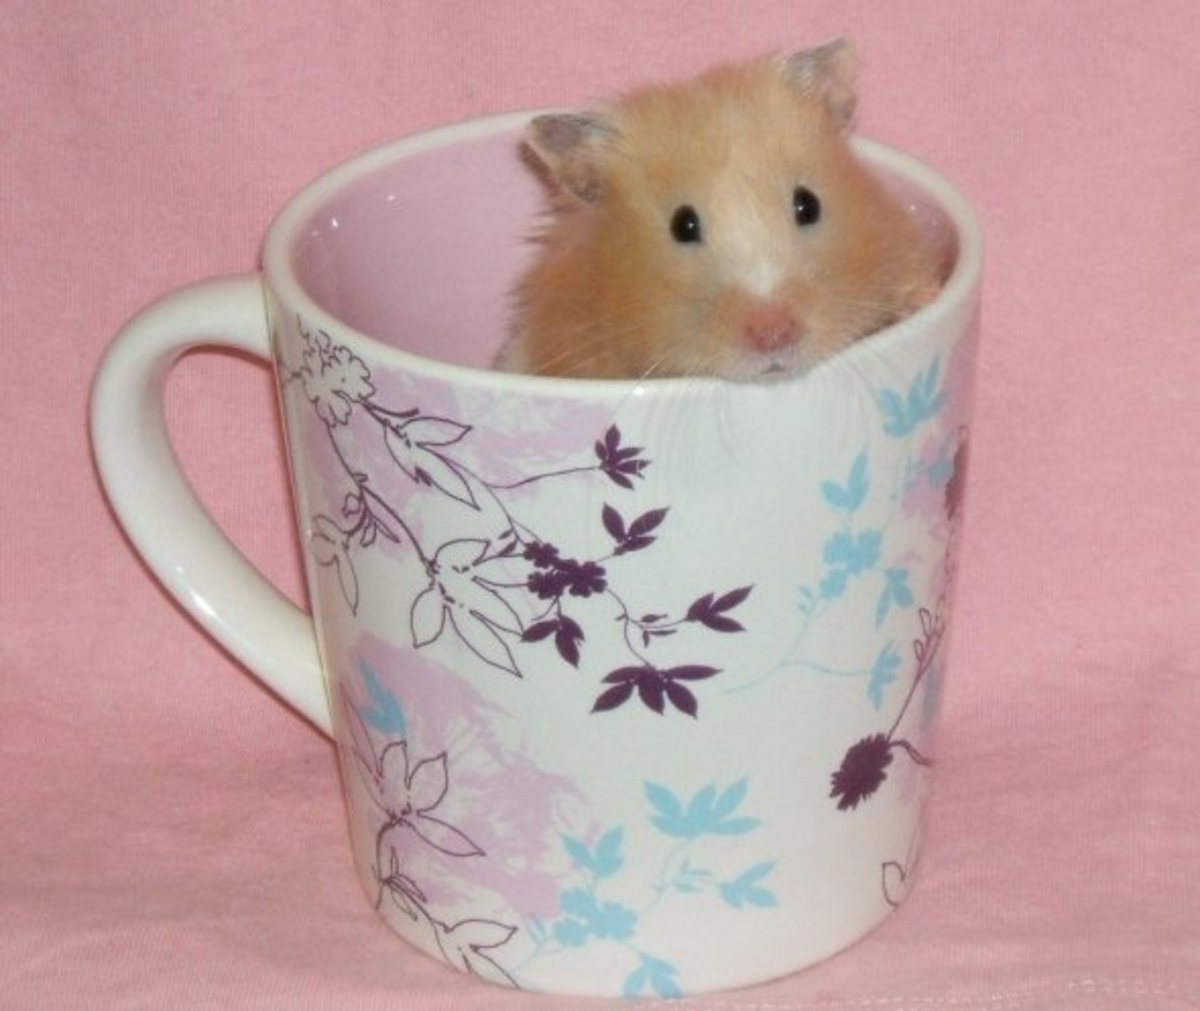 How About A Cup Of Hamster. In the photo is a beautiful specimen of a Teddy Bear Hamster.